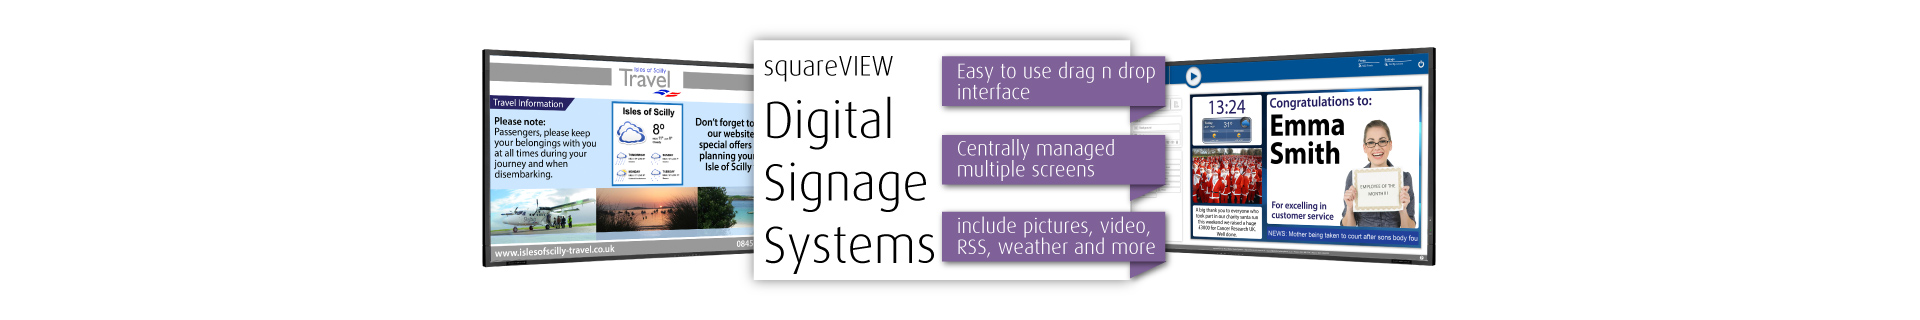 Digital Signage Display Software and hardware screens